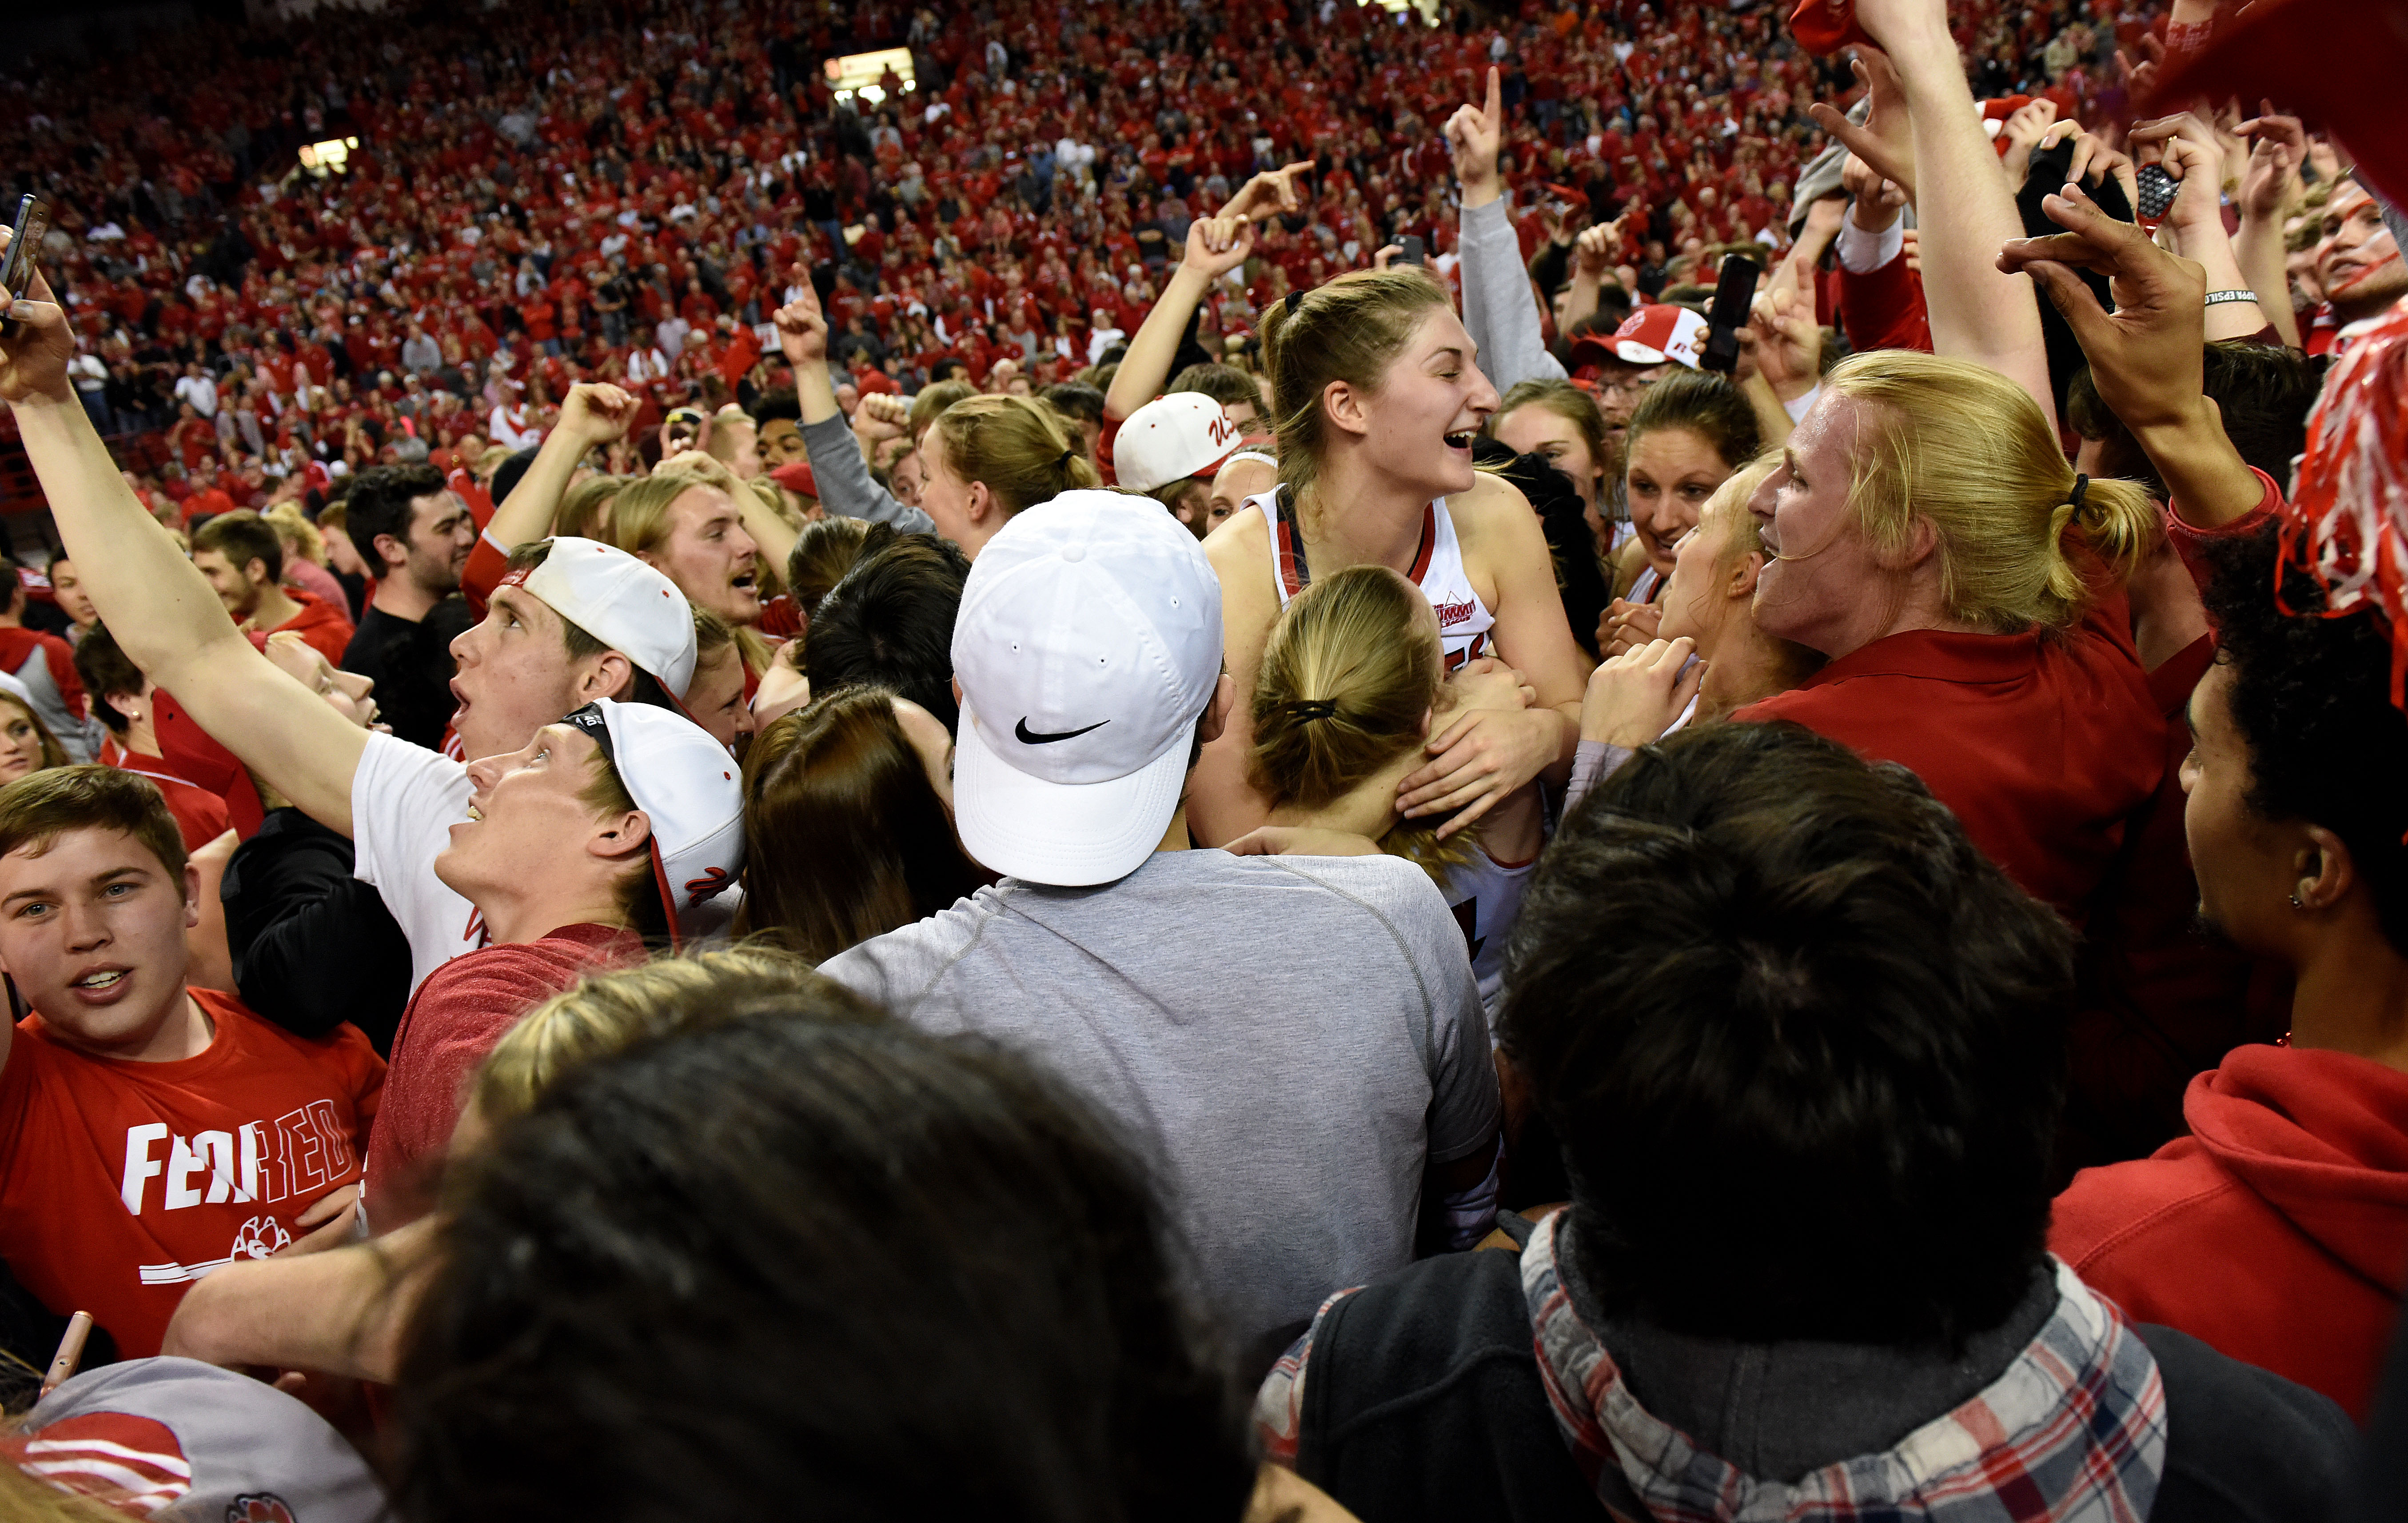 South Dakota fans storm the court after their team defeated Florida Gulf Coast 71-65 in the WNIT championship women's college basketball game at the DakotaDome in Vermillion, S.D., Saturday, April 2, 2016.  (Emily Spartz Weerheim/The Argus Leader via AP)